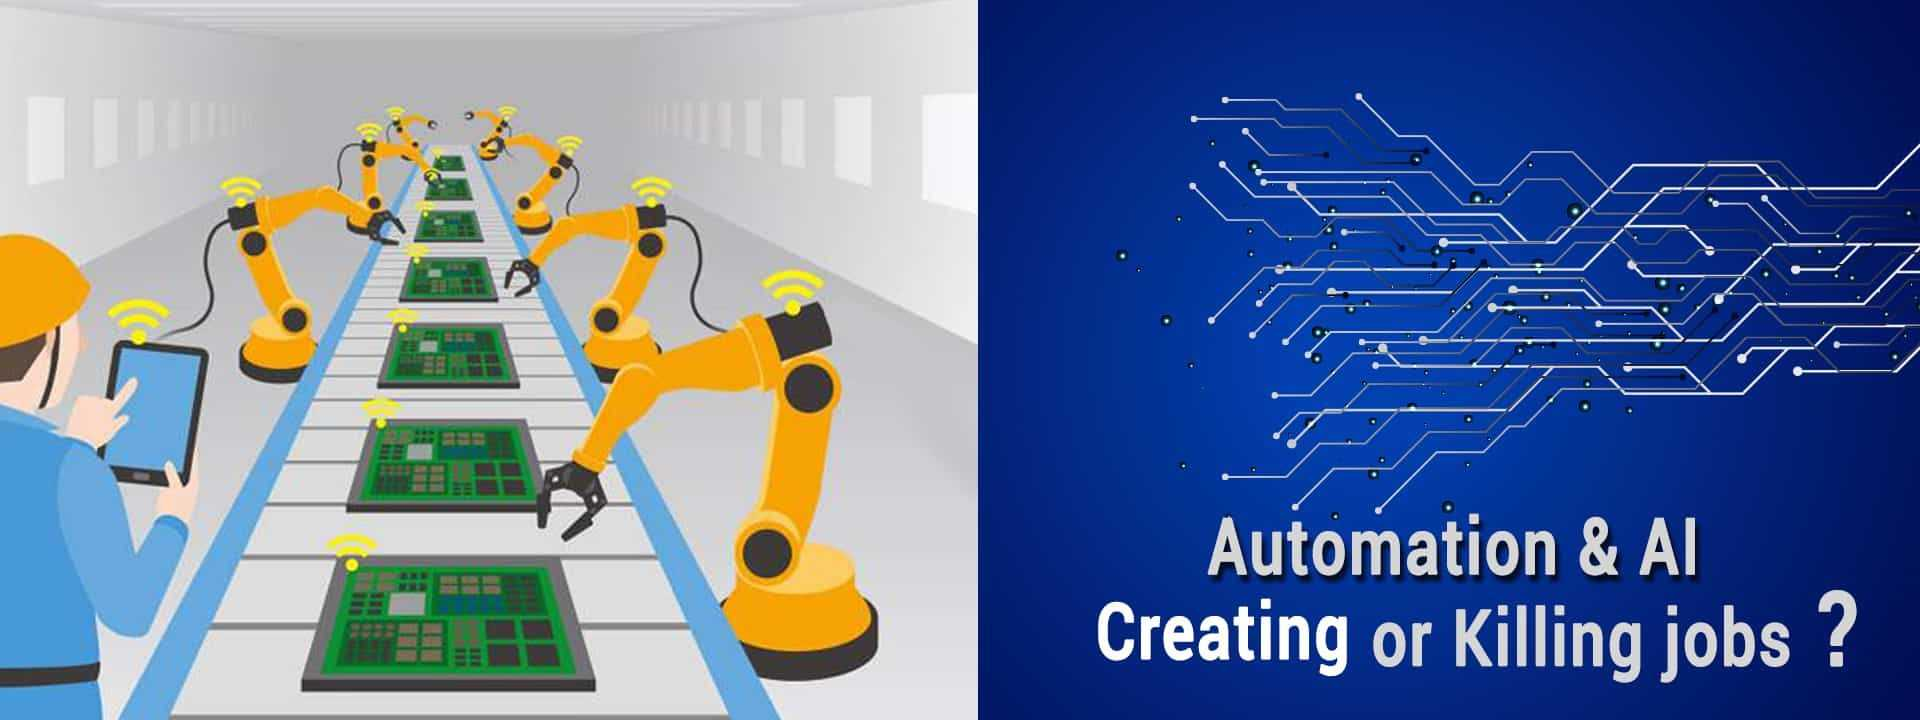 Automation and AI, Creating Or Killing jobs?